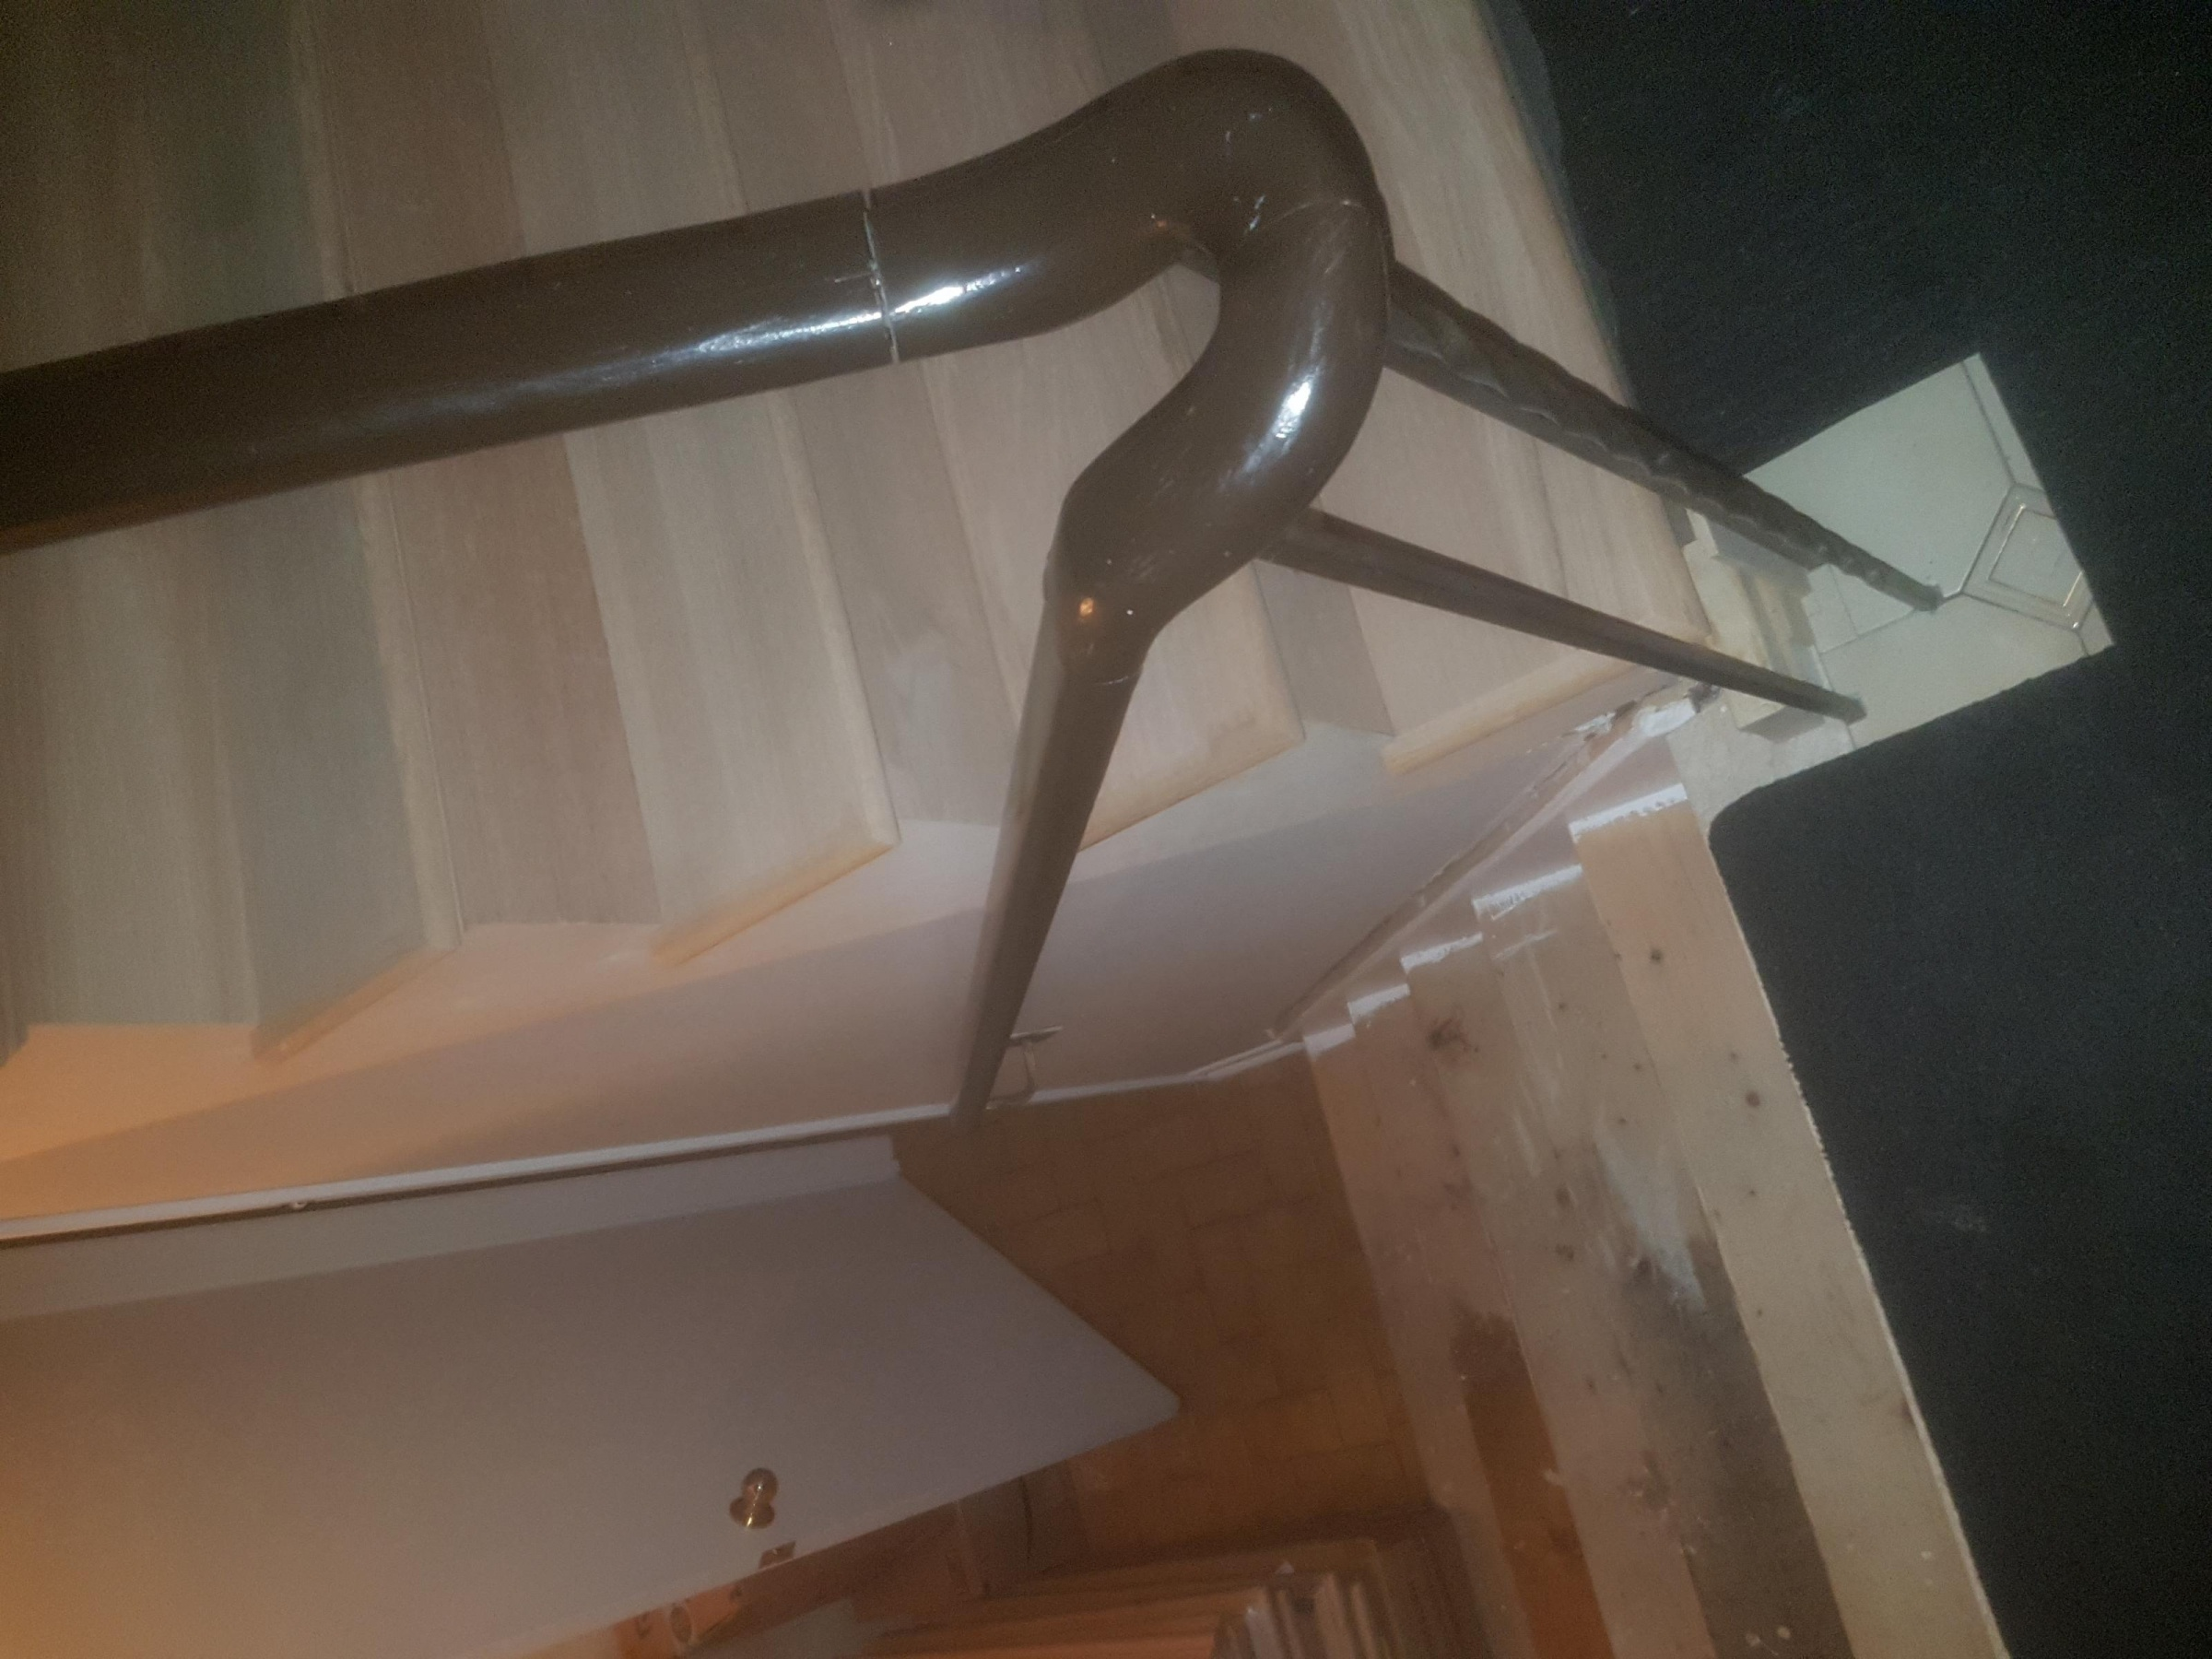 Round Stainless Stair Baluster Install?-20190105_211531_1546798800894.jpg